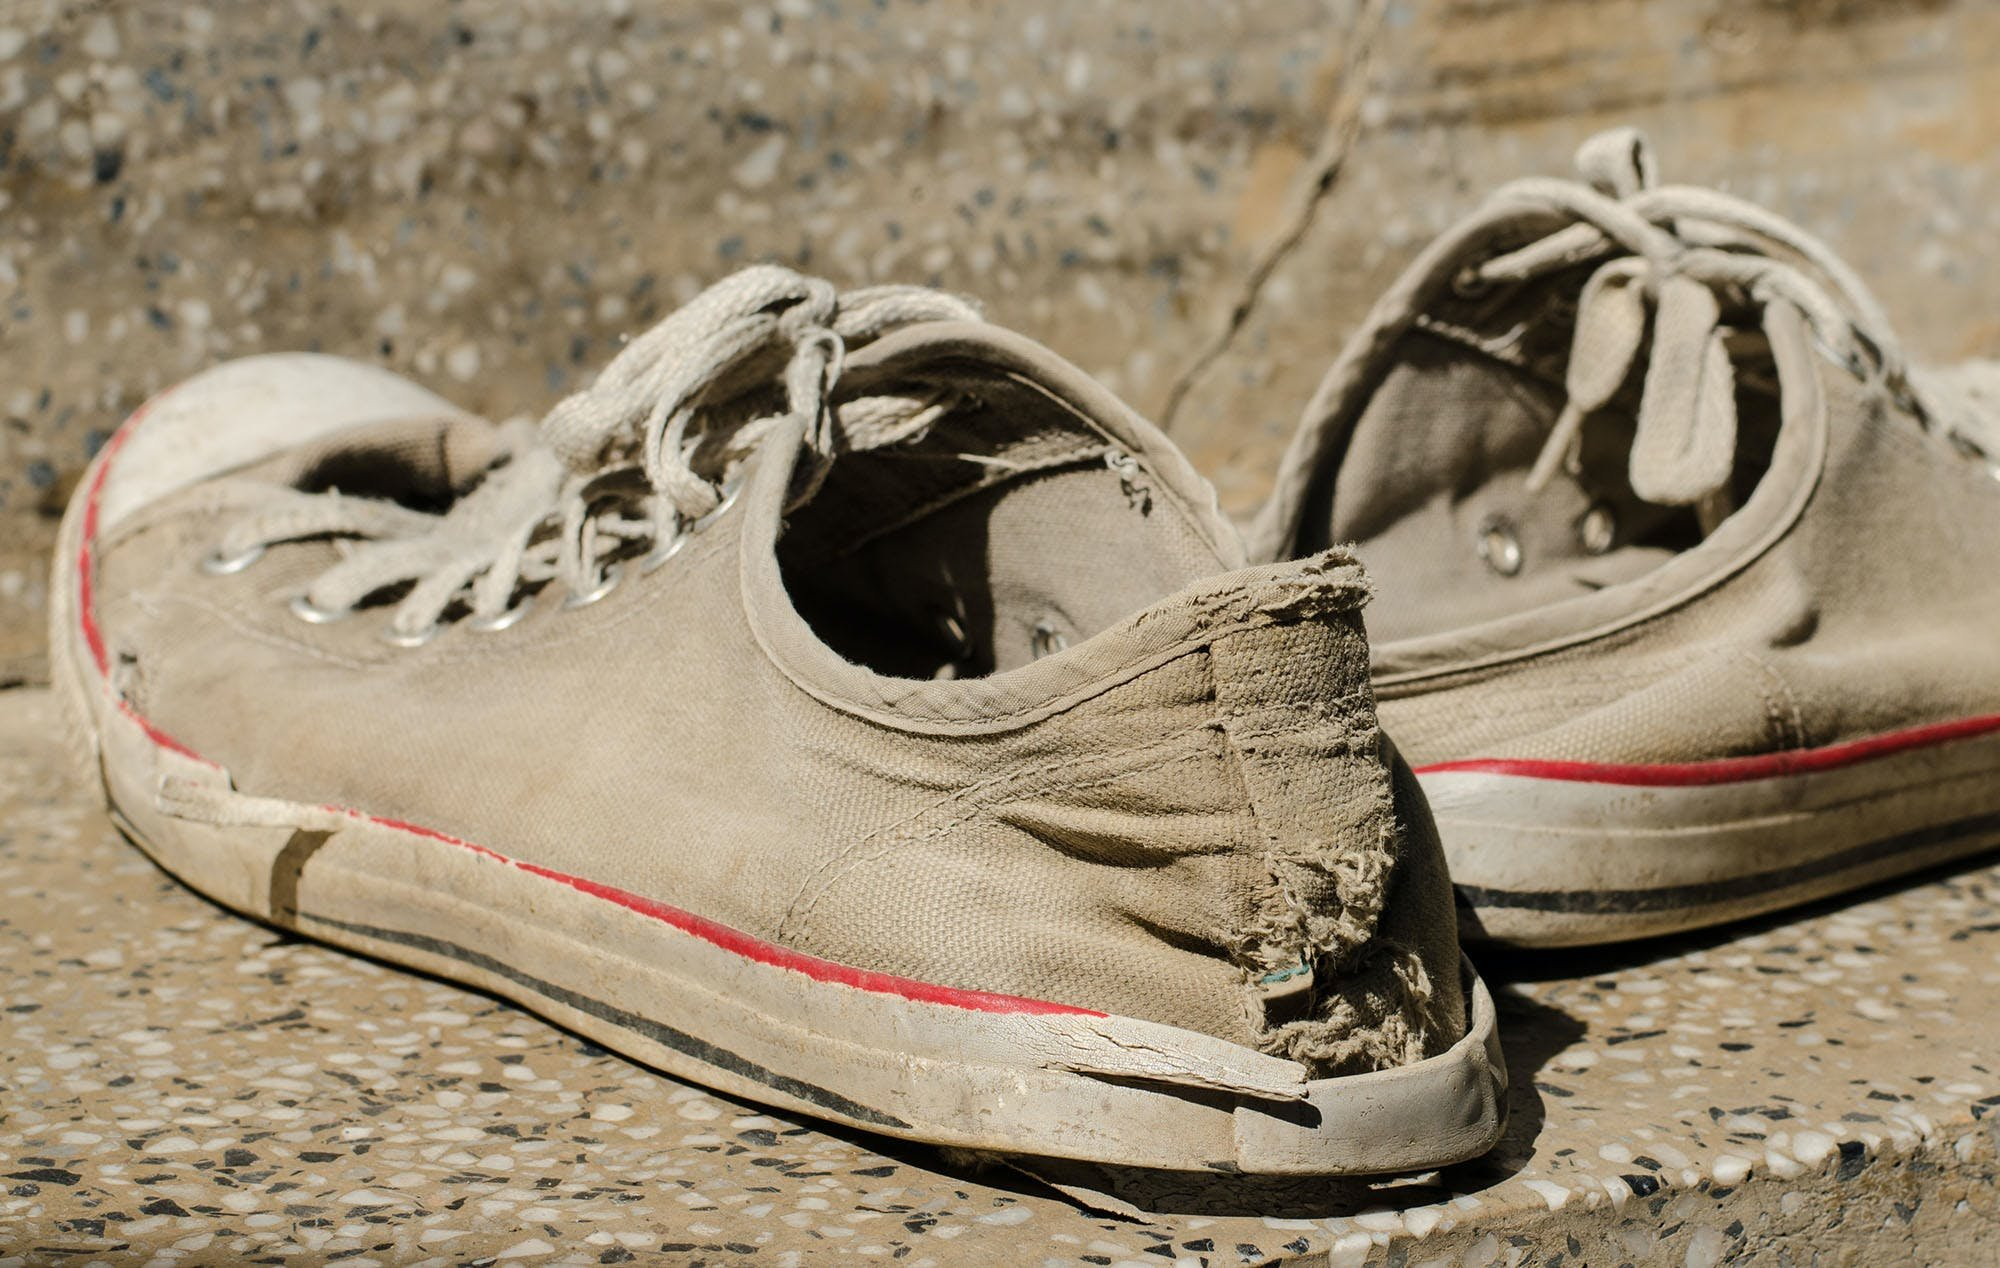 A pair of old sneakers with a hole in them